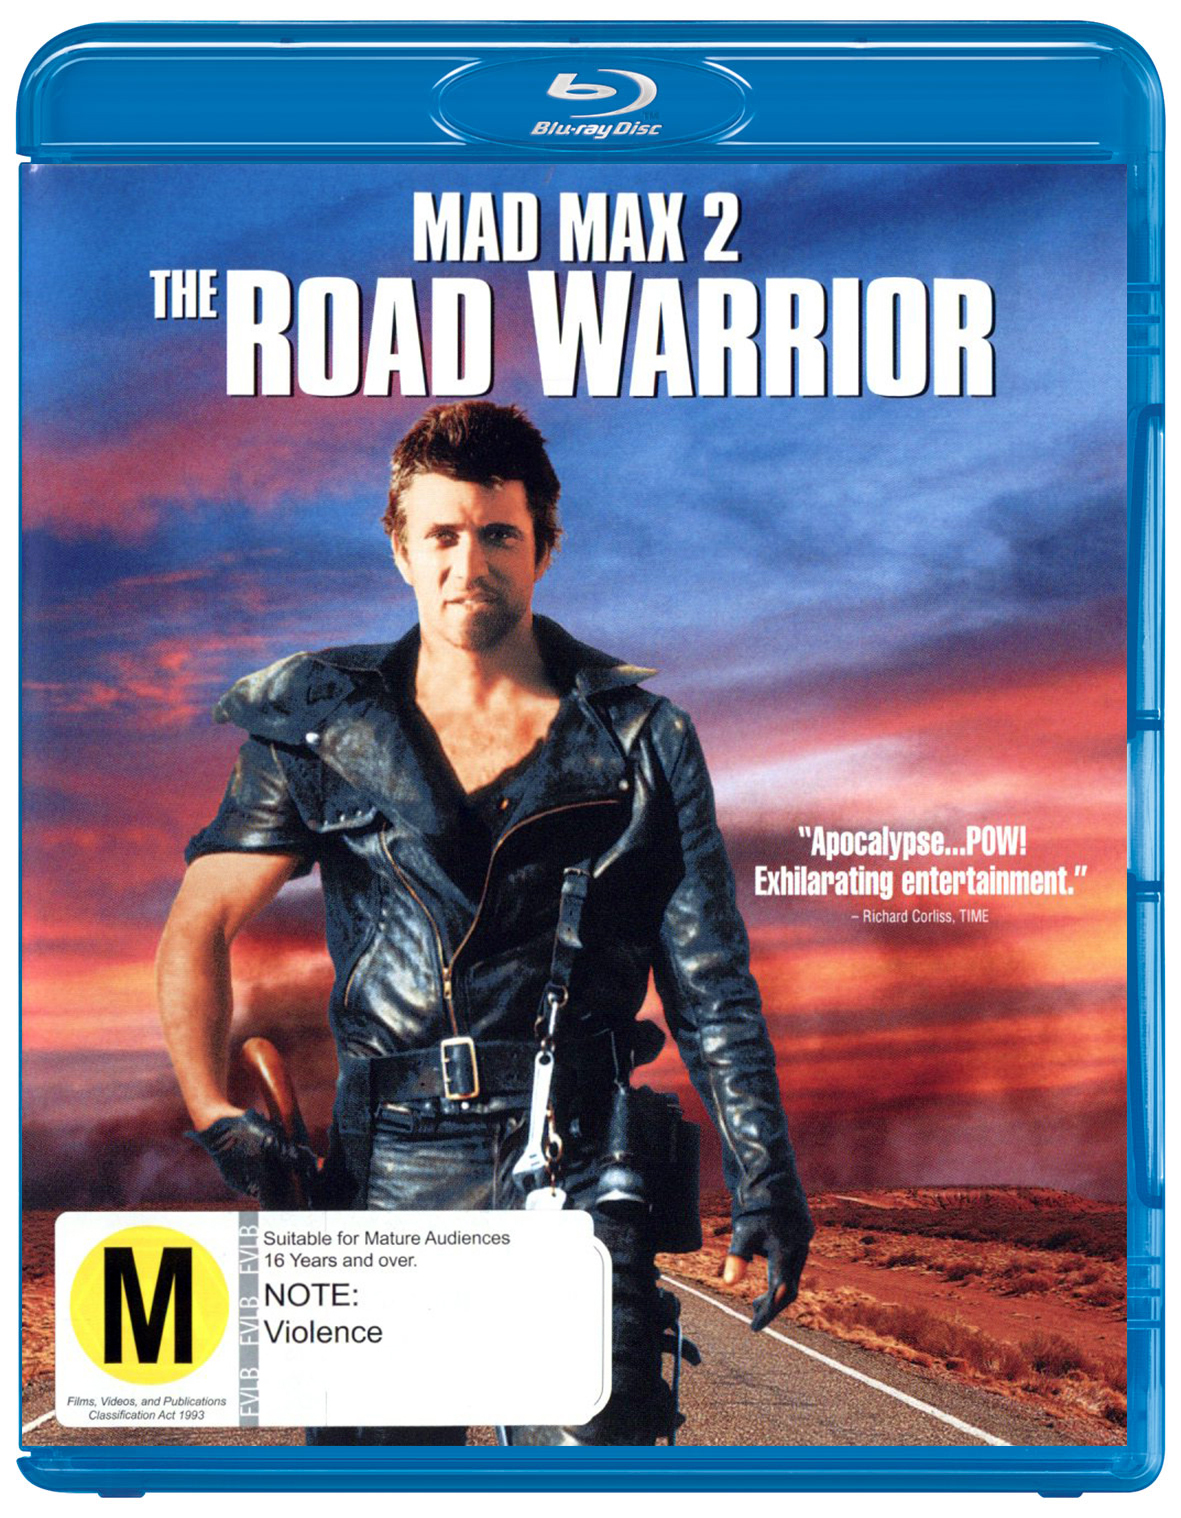 The Road Warrior - Mad Max 2 on Blu-ray image